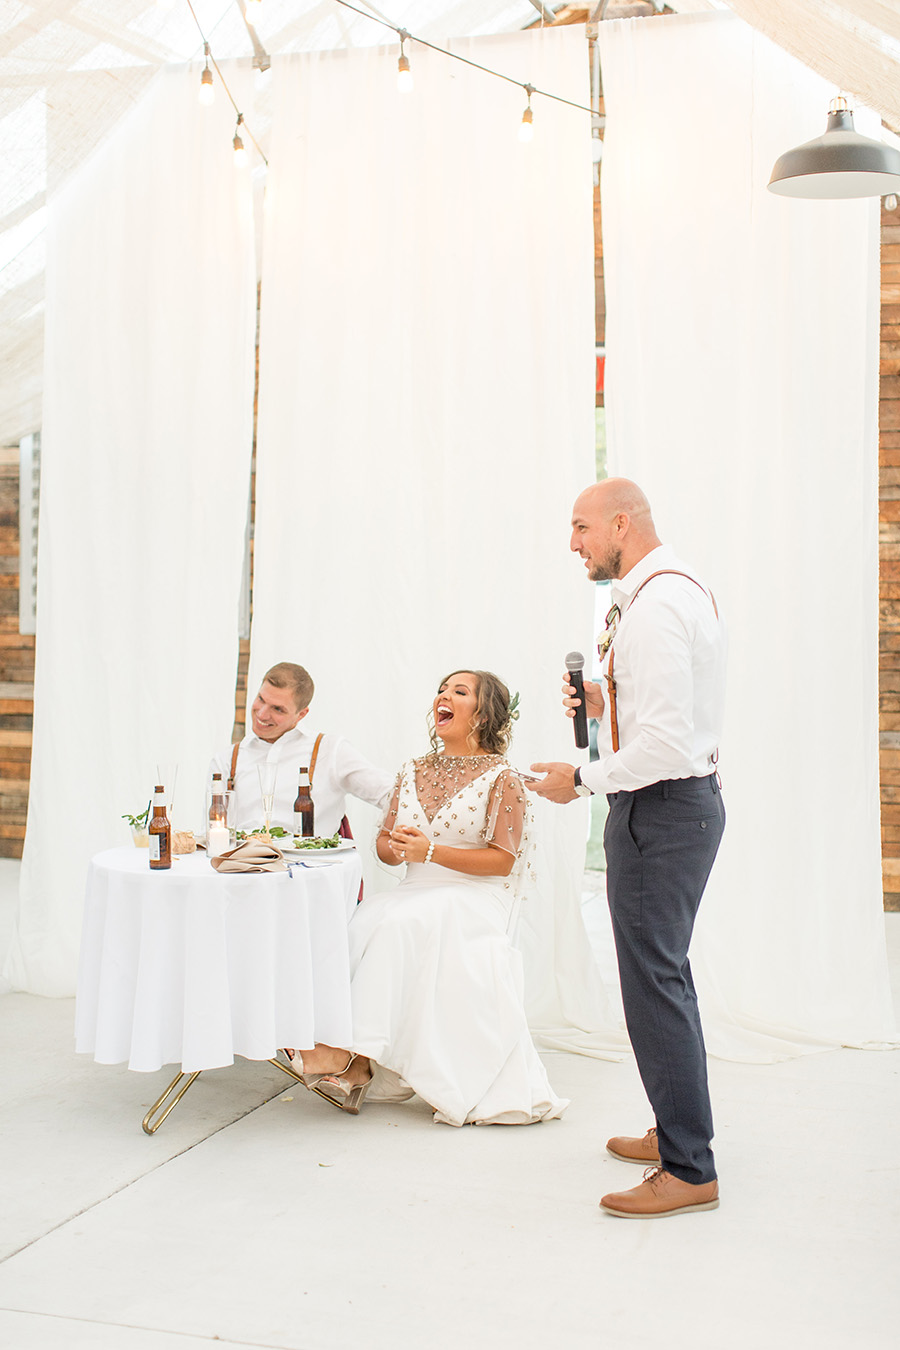 Best man gives a wedding toast